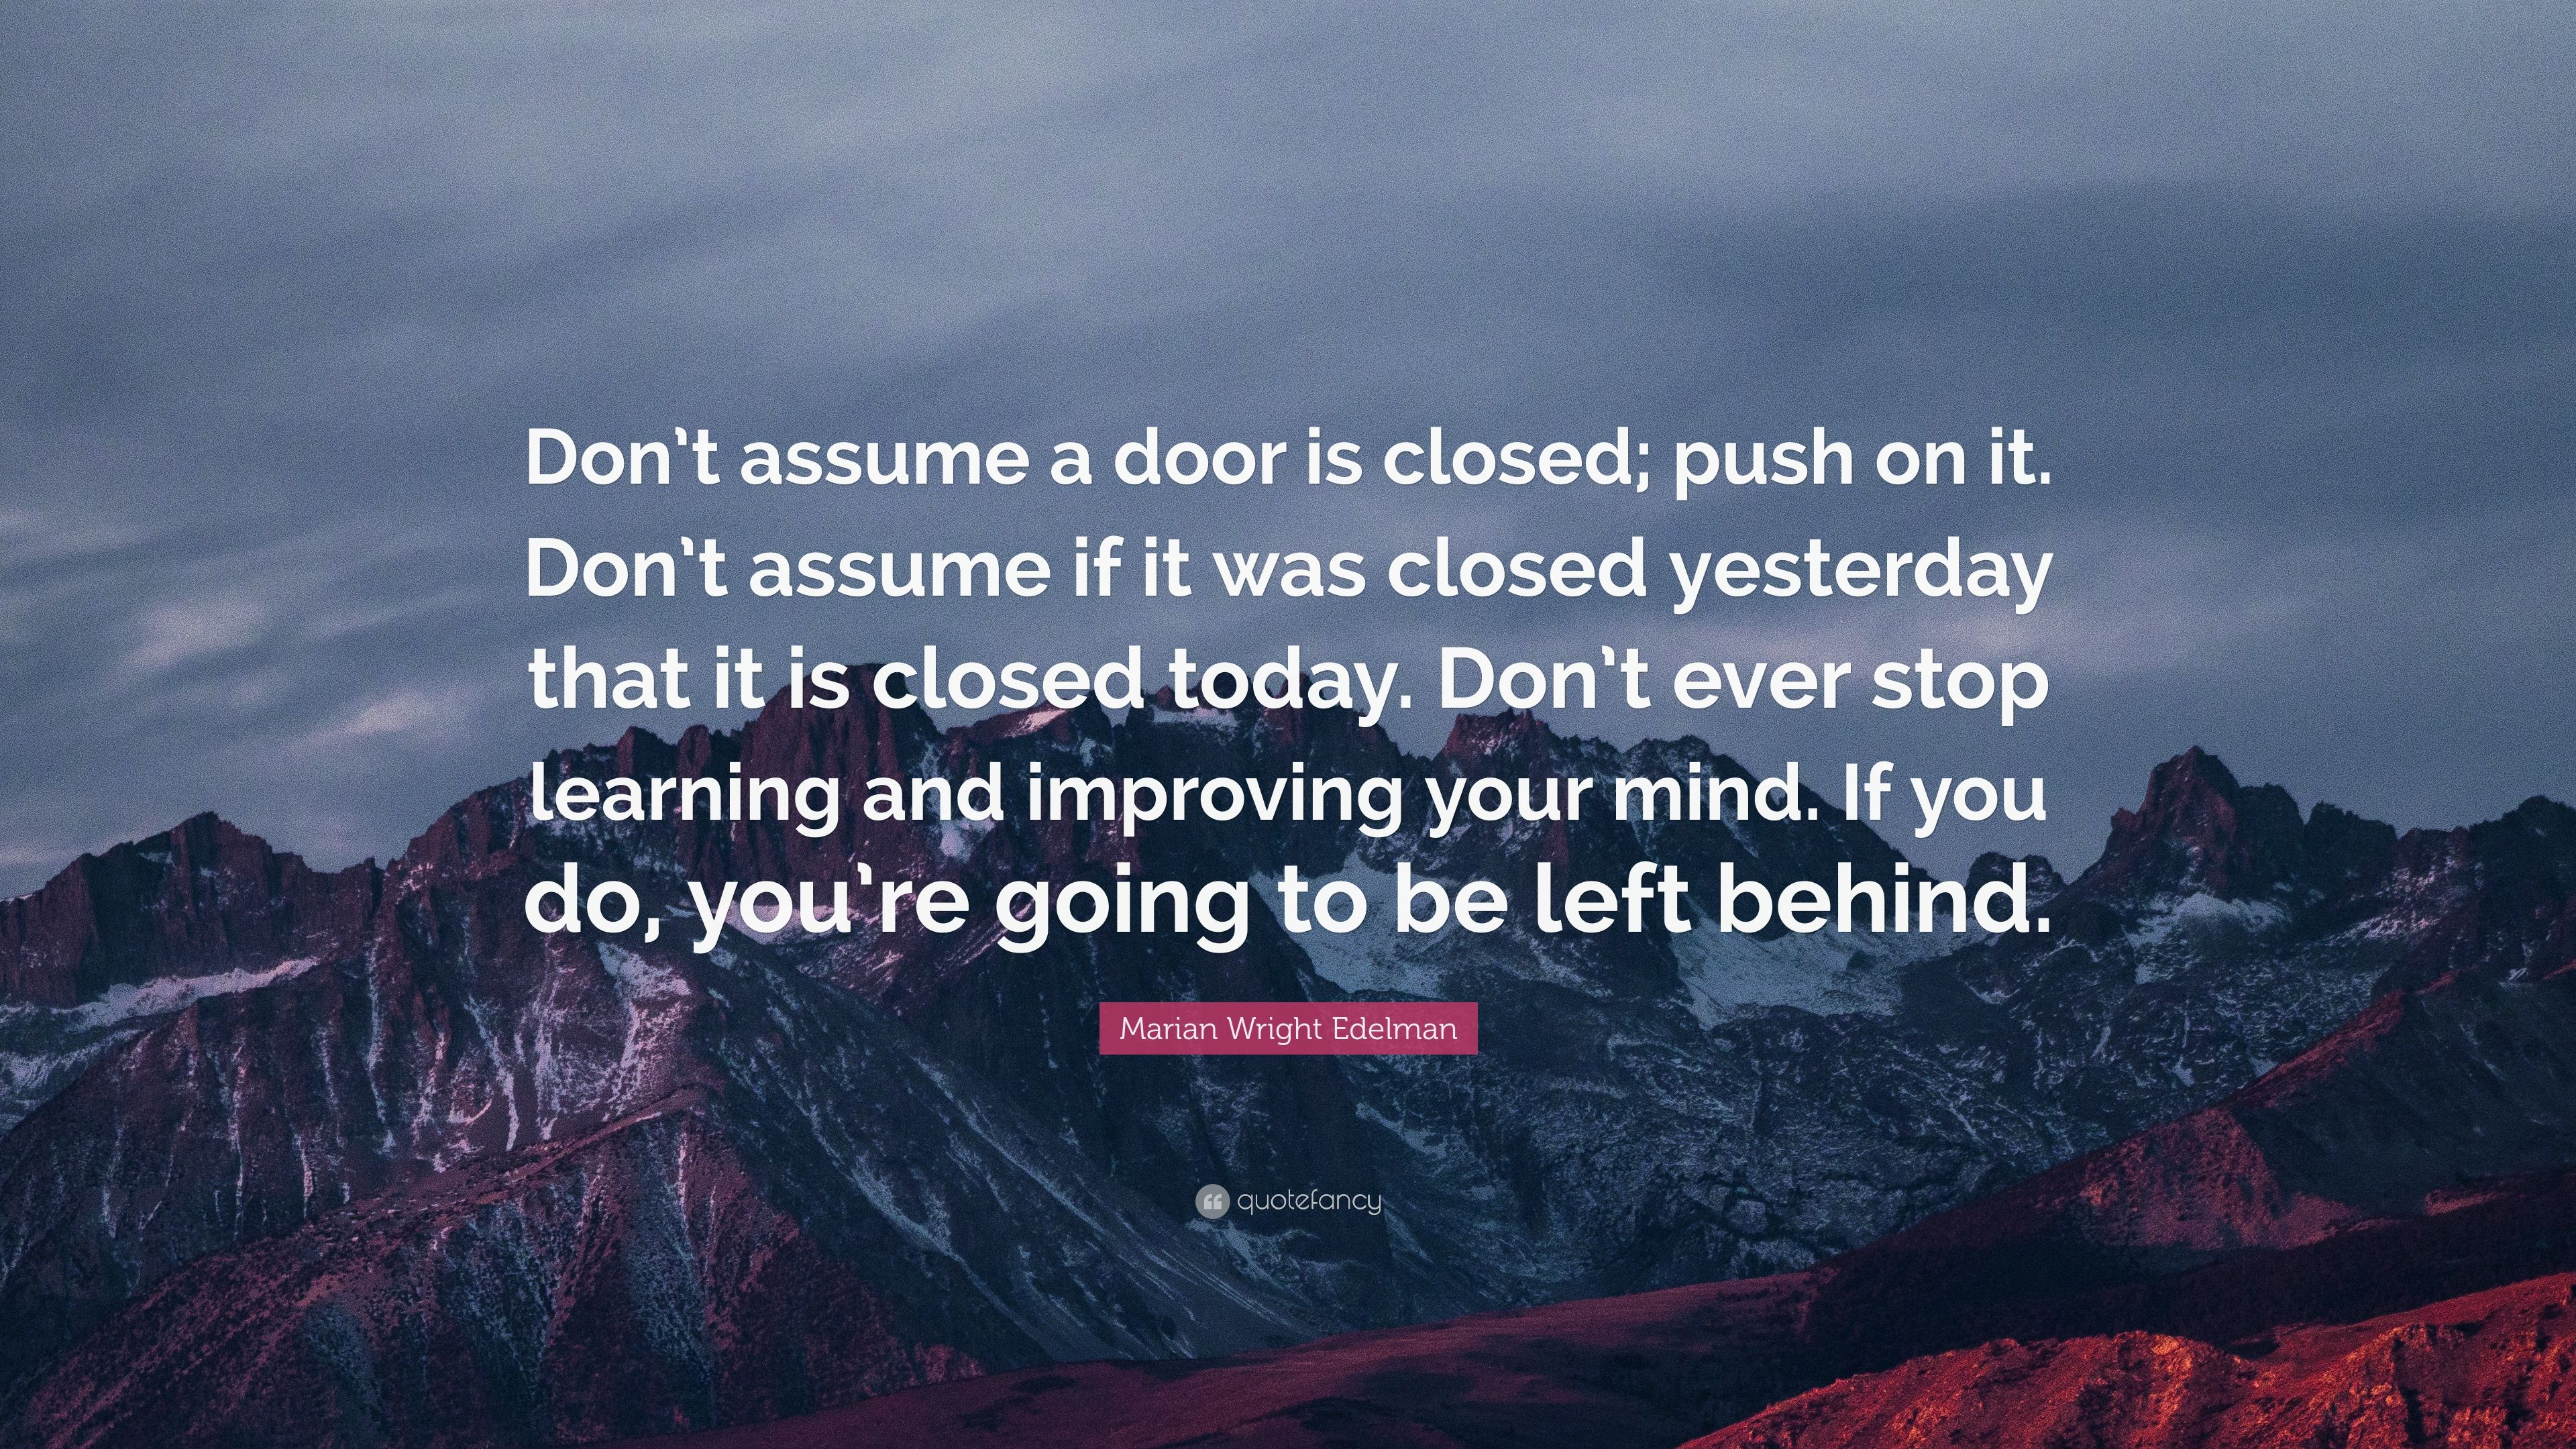 2292466-Marian-Wright-Edelman-Quote-Don-t-assume-a-door-is-closed-push-on